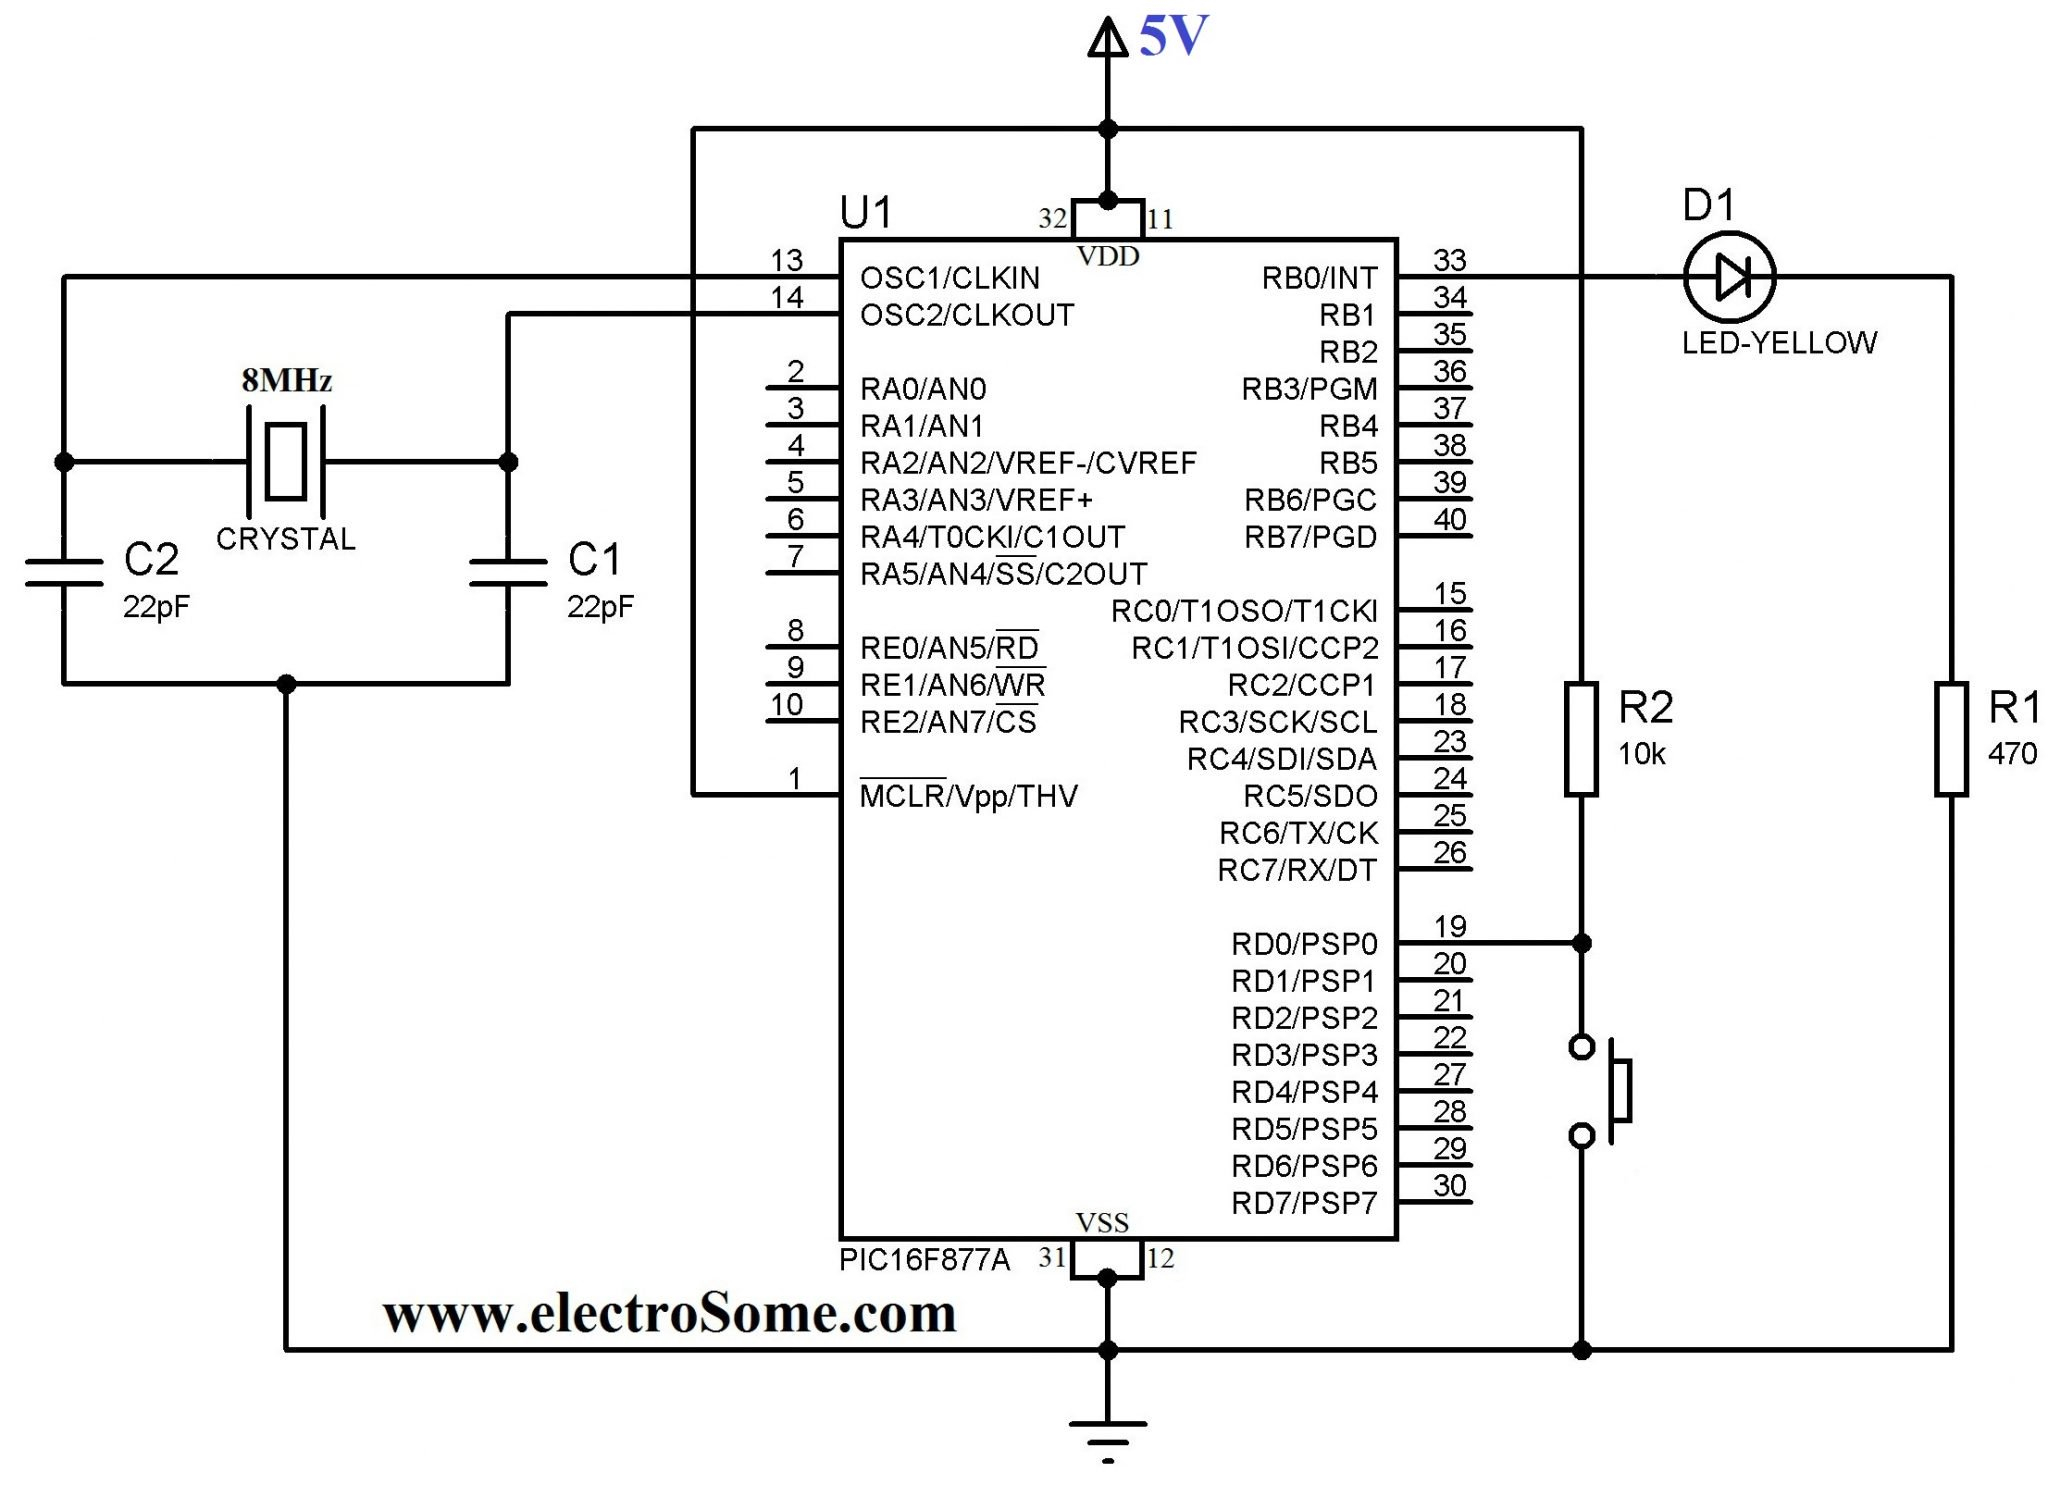 Emergency Push Button Wiring Diagram Sample Wiring Diagram Sample